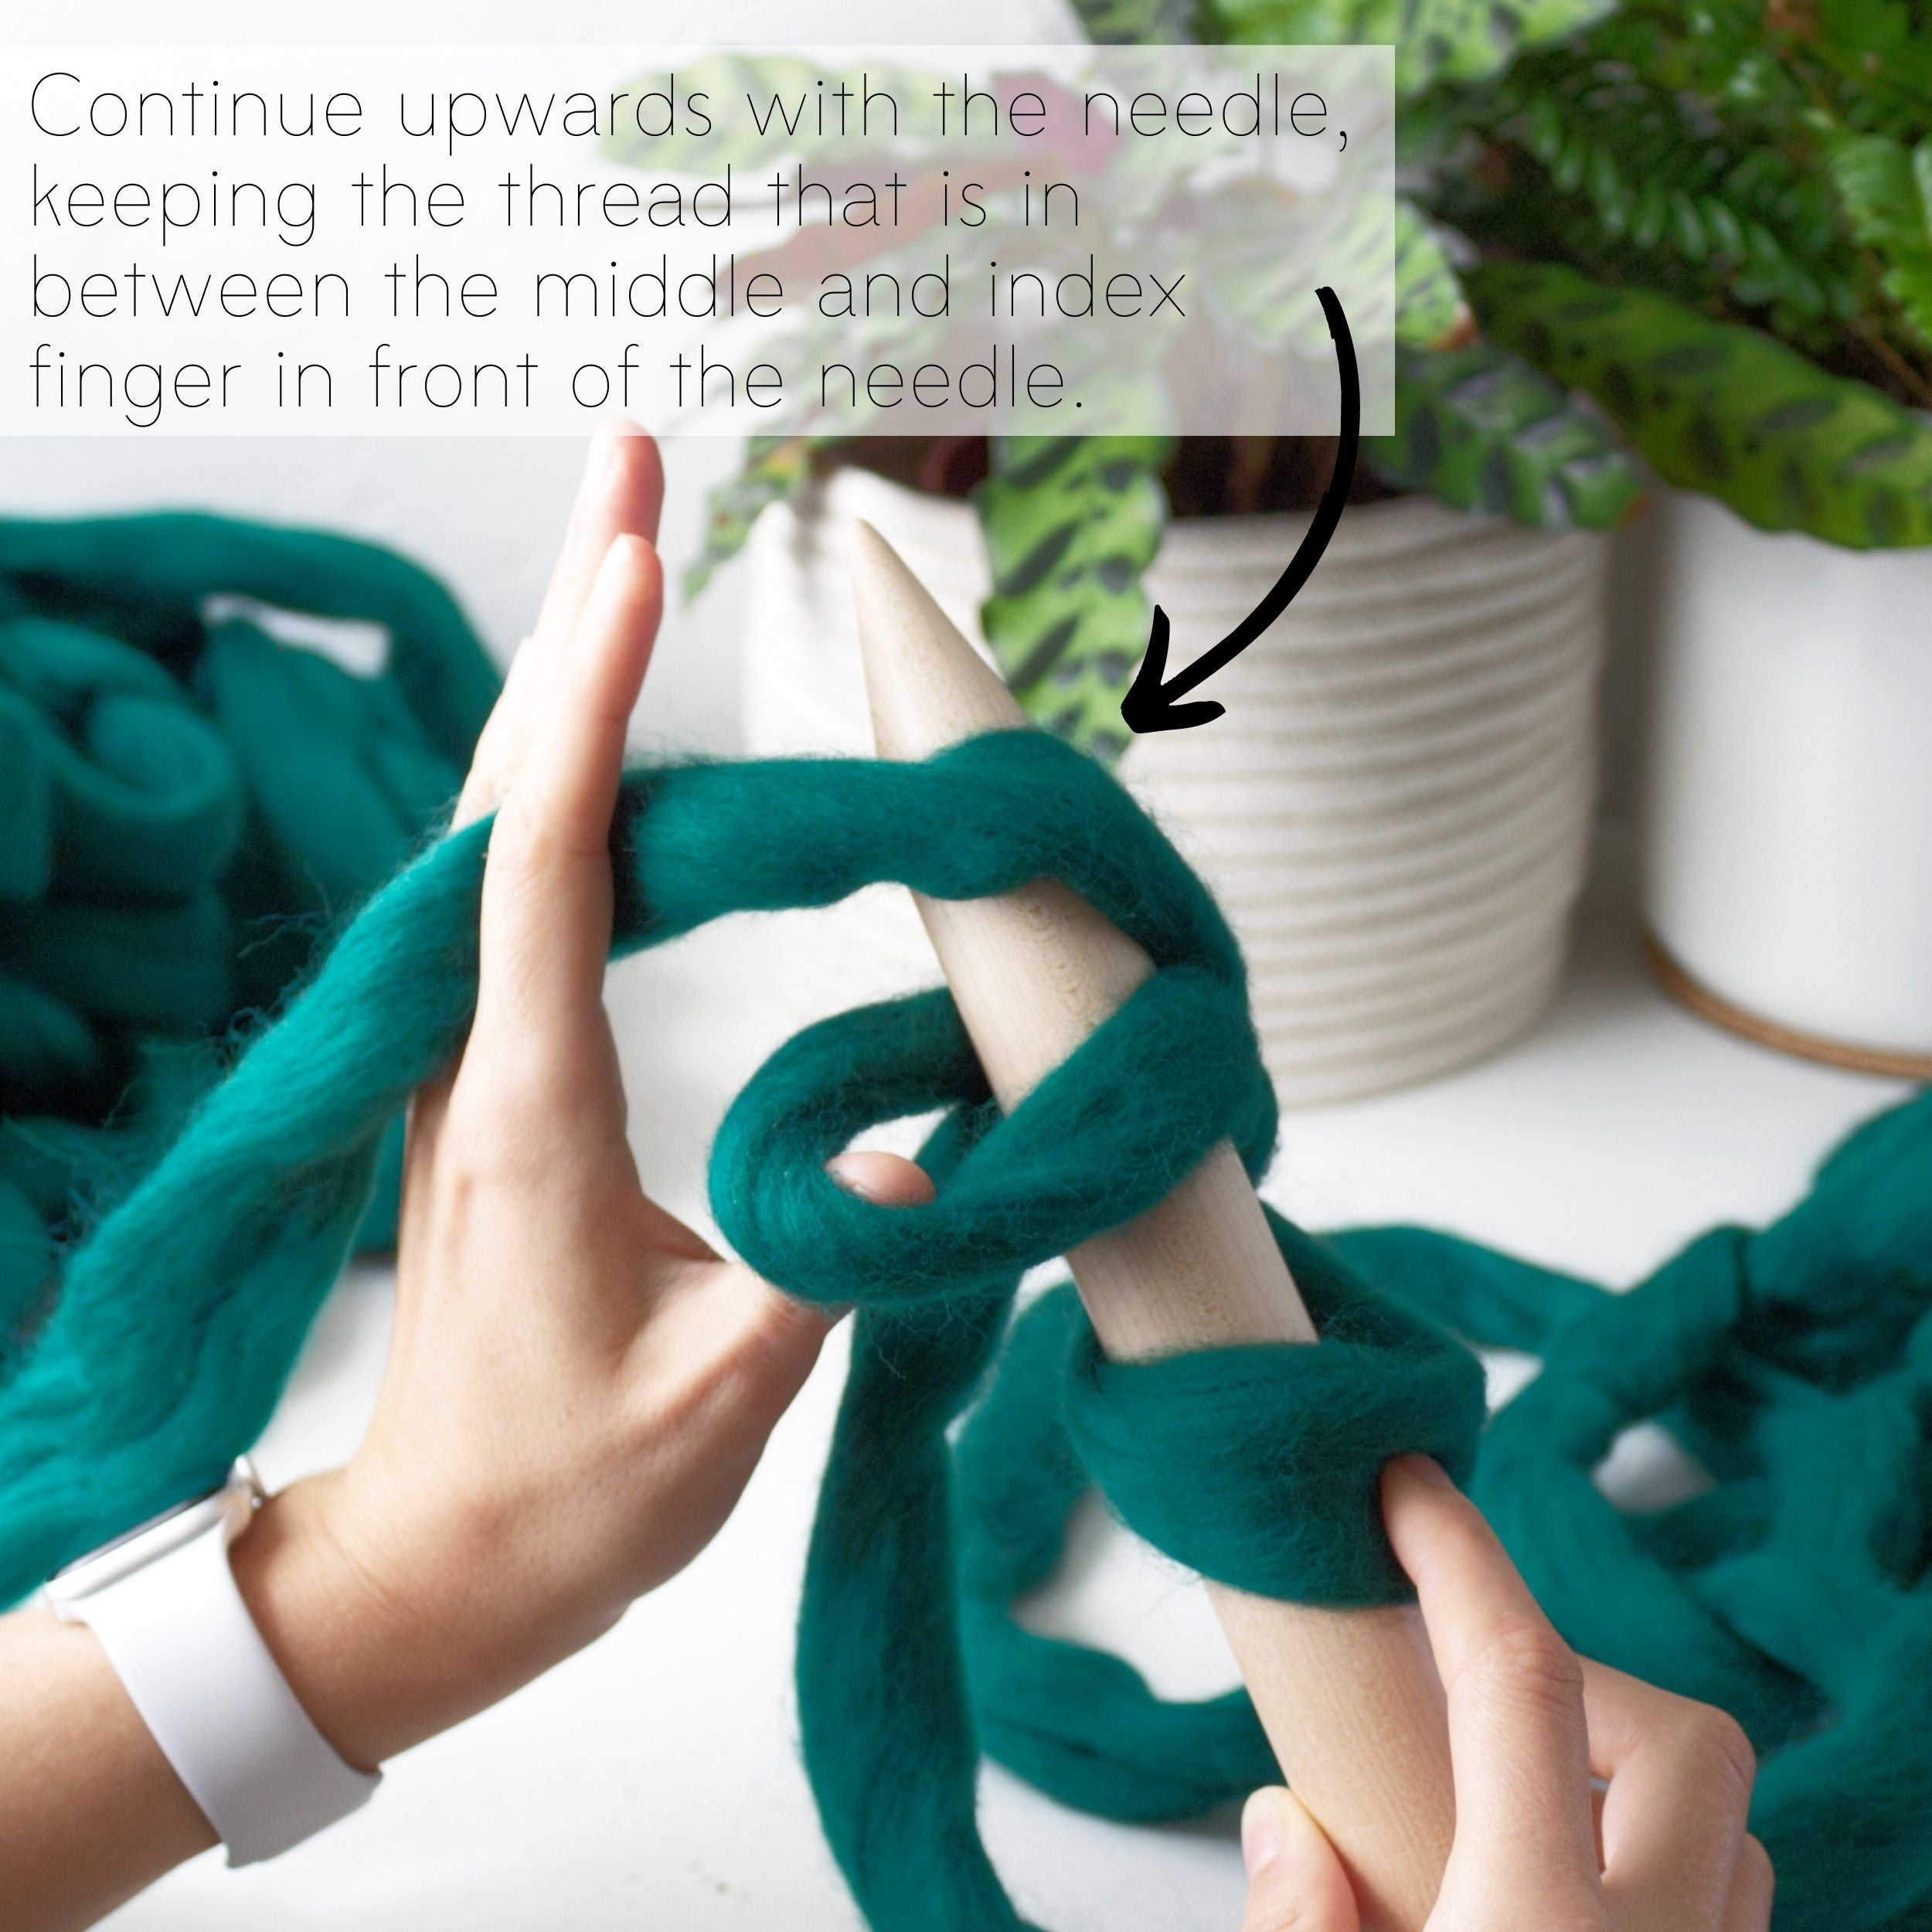 How to make a DIY chunky knit blanket, step 3.4